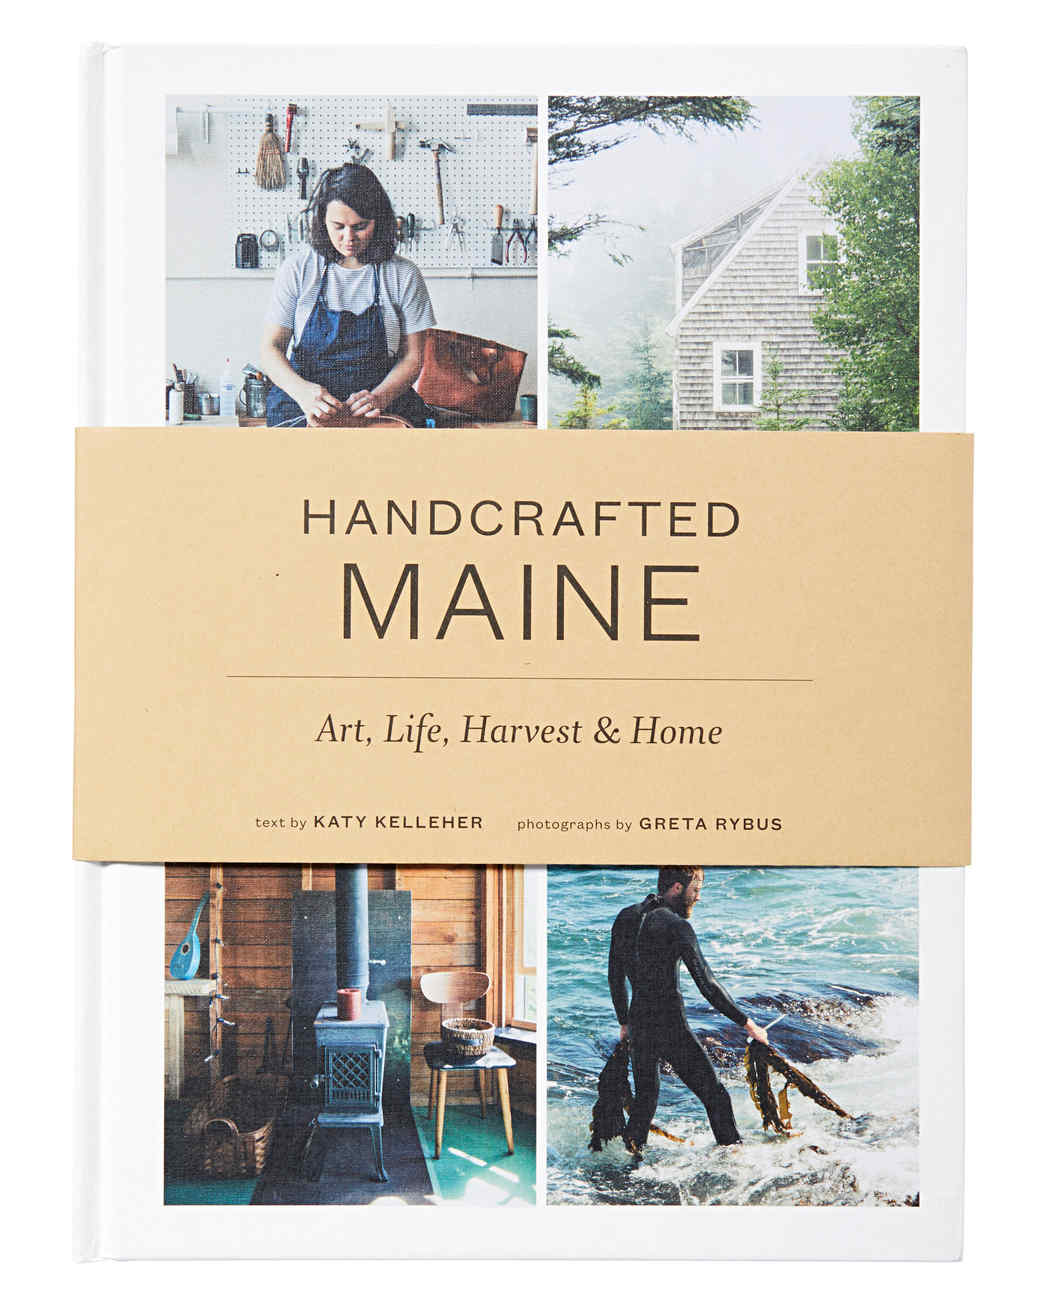 handcrafted maine: art, life, harvest & home by katy kelleher